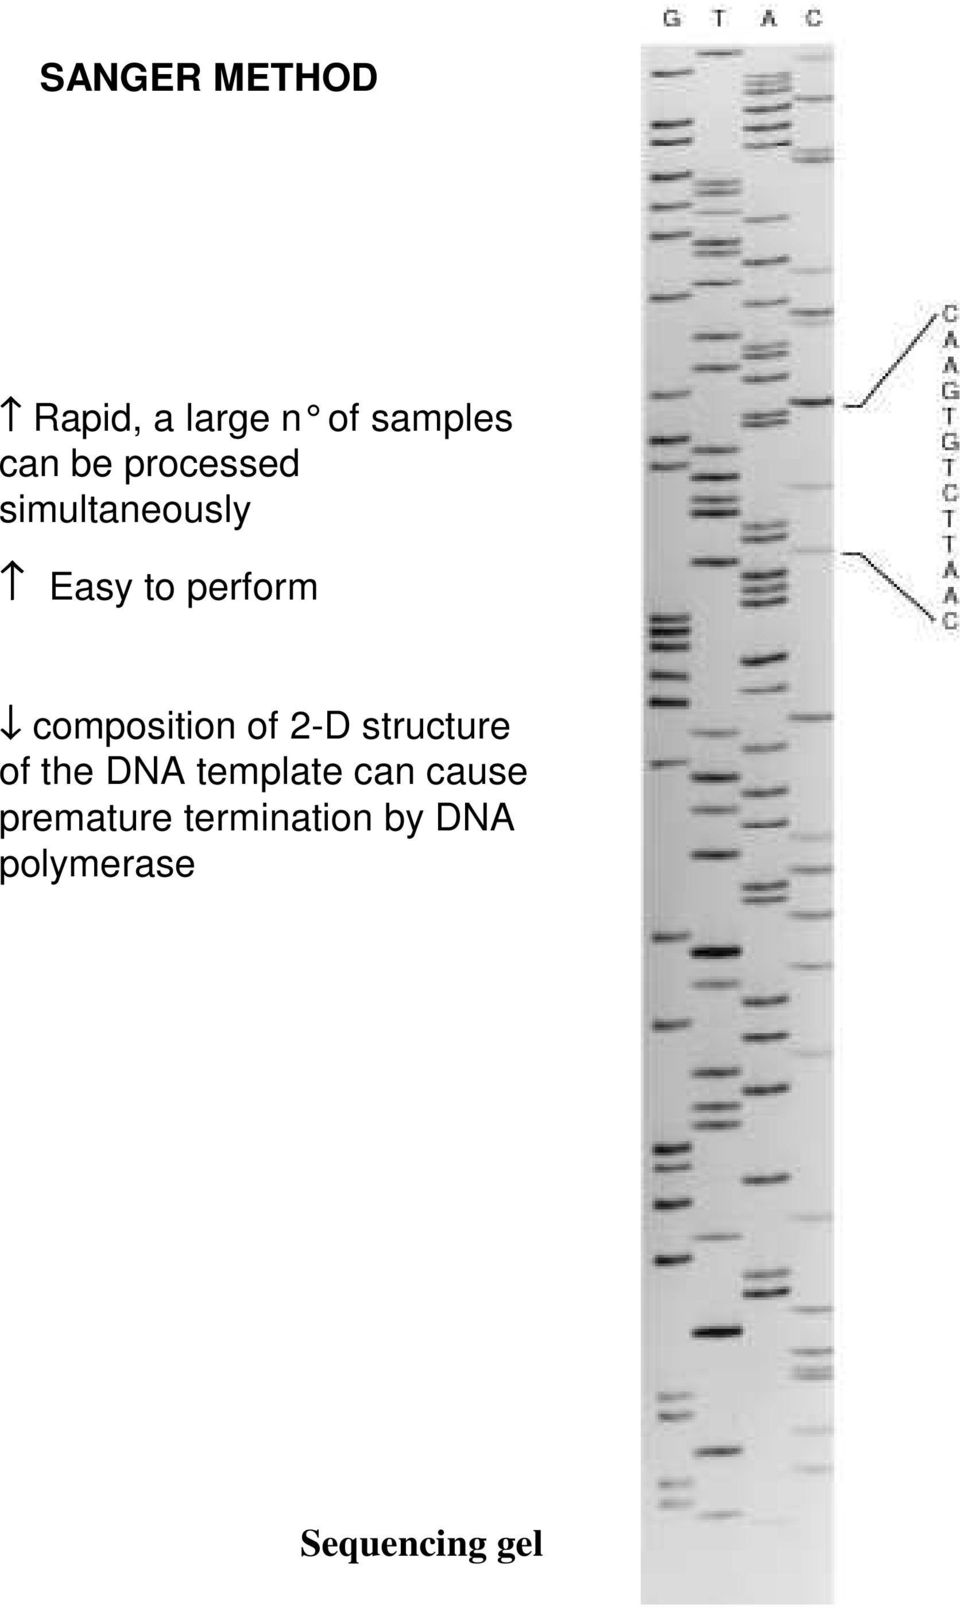 composition of 2-D structure of the DNA template